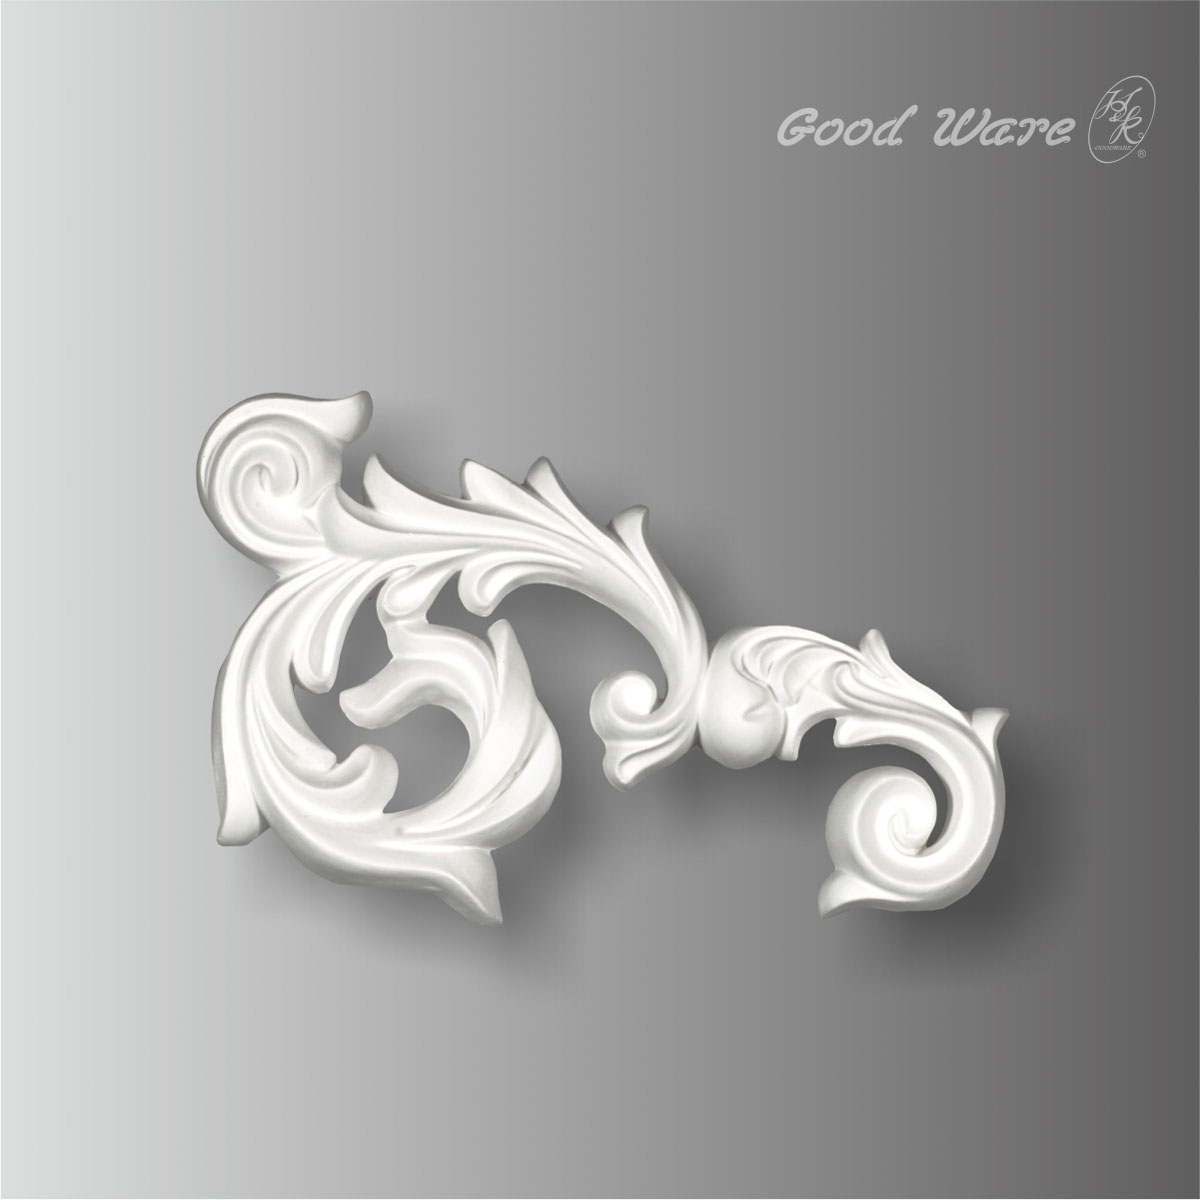 Decorative wall decor accessories molding